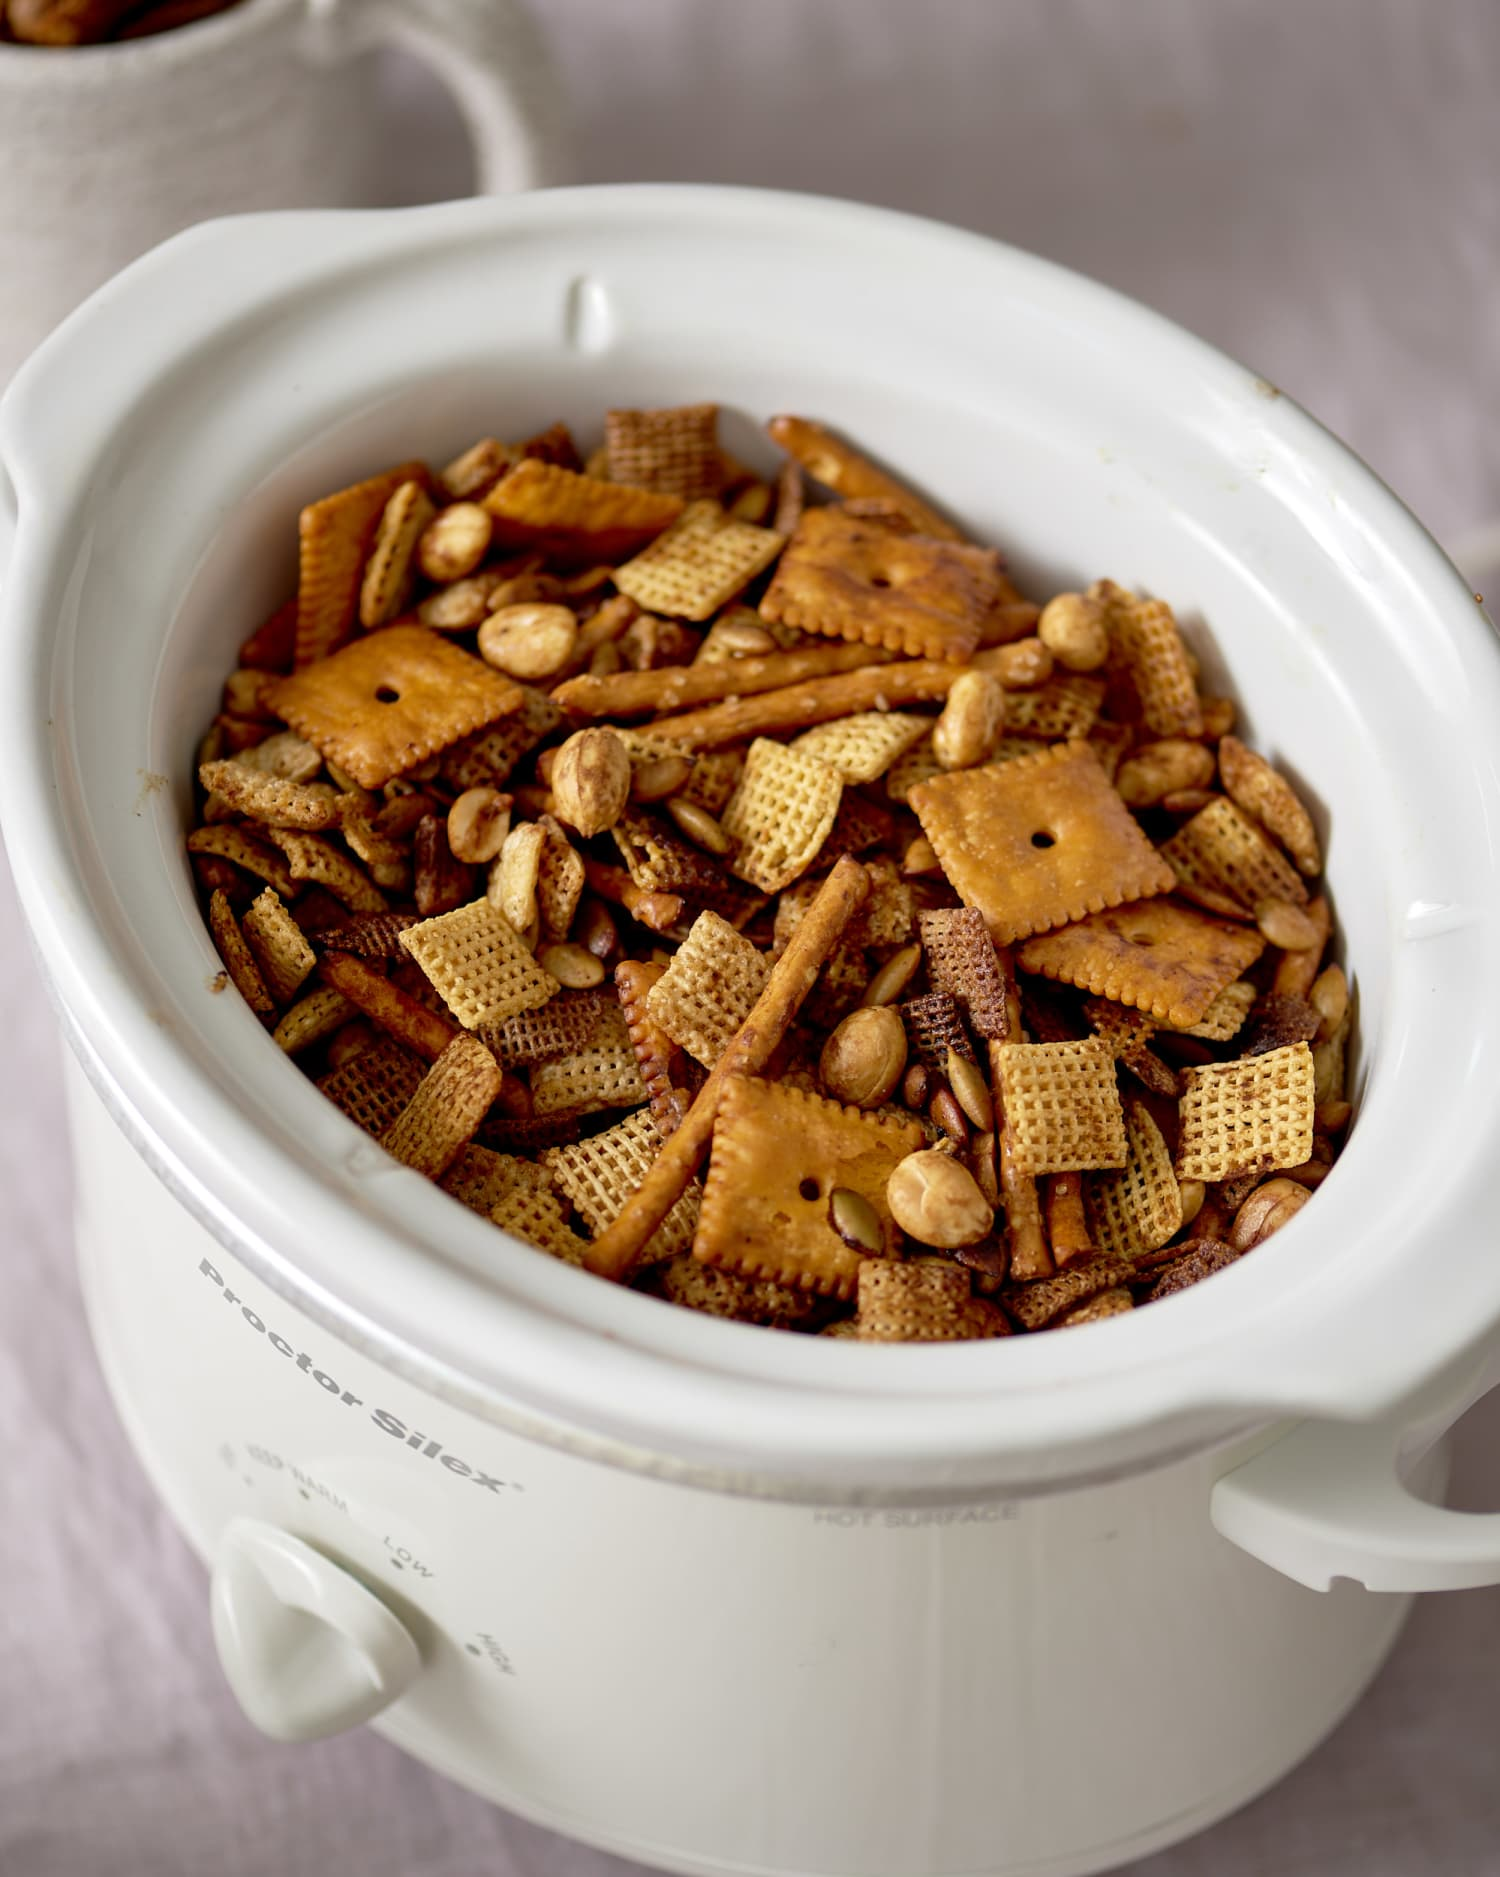 12 Sweet, Salty, and Totally Irresistible Ways to Make Chex Party Mix